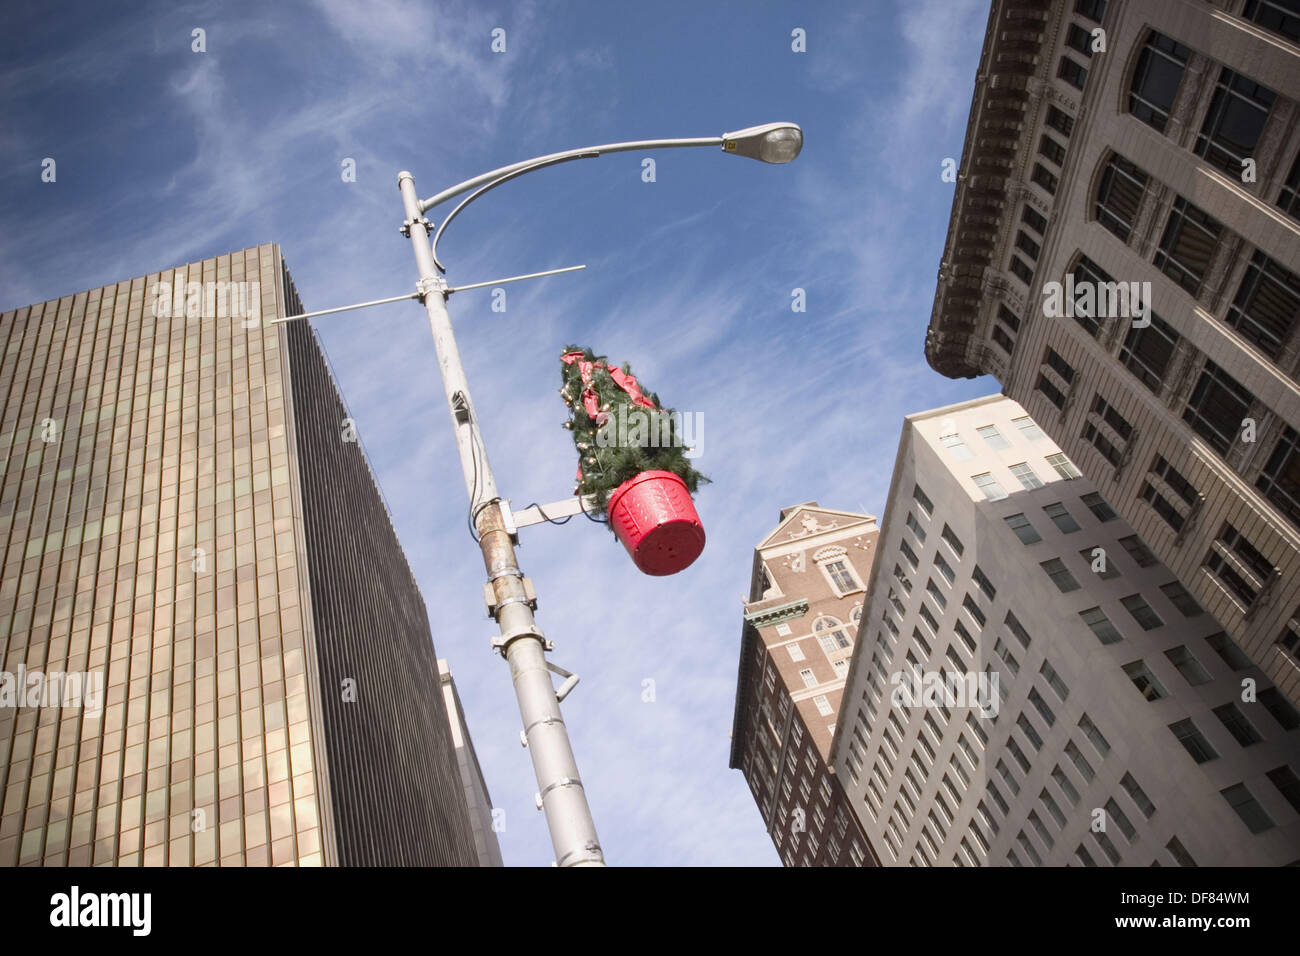 christmas decorations attached to a light pole on a city street stock image - Light Pole Christmas Decorations